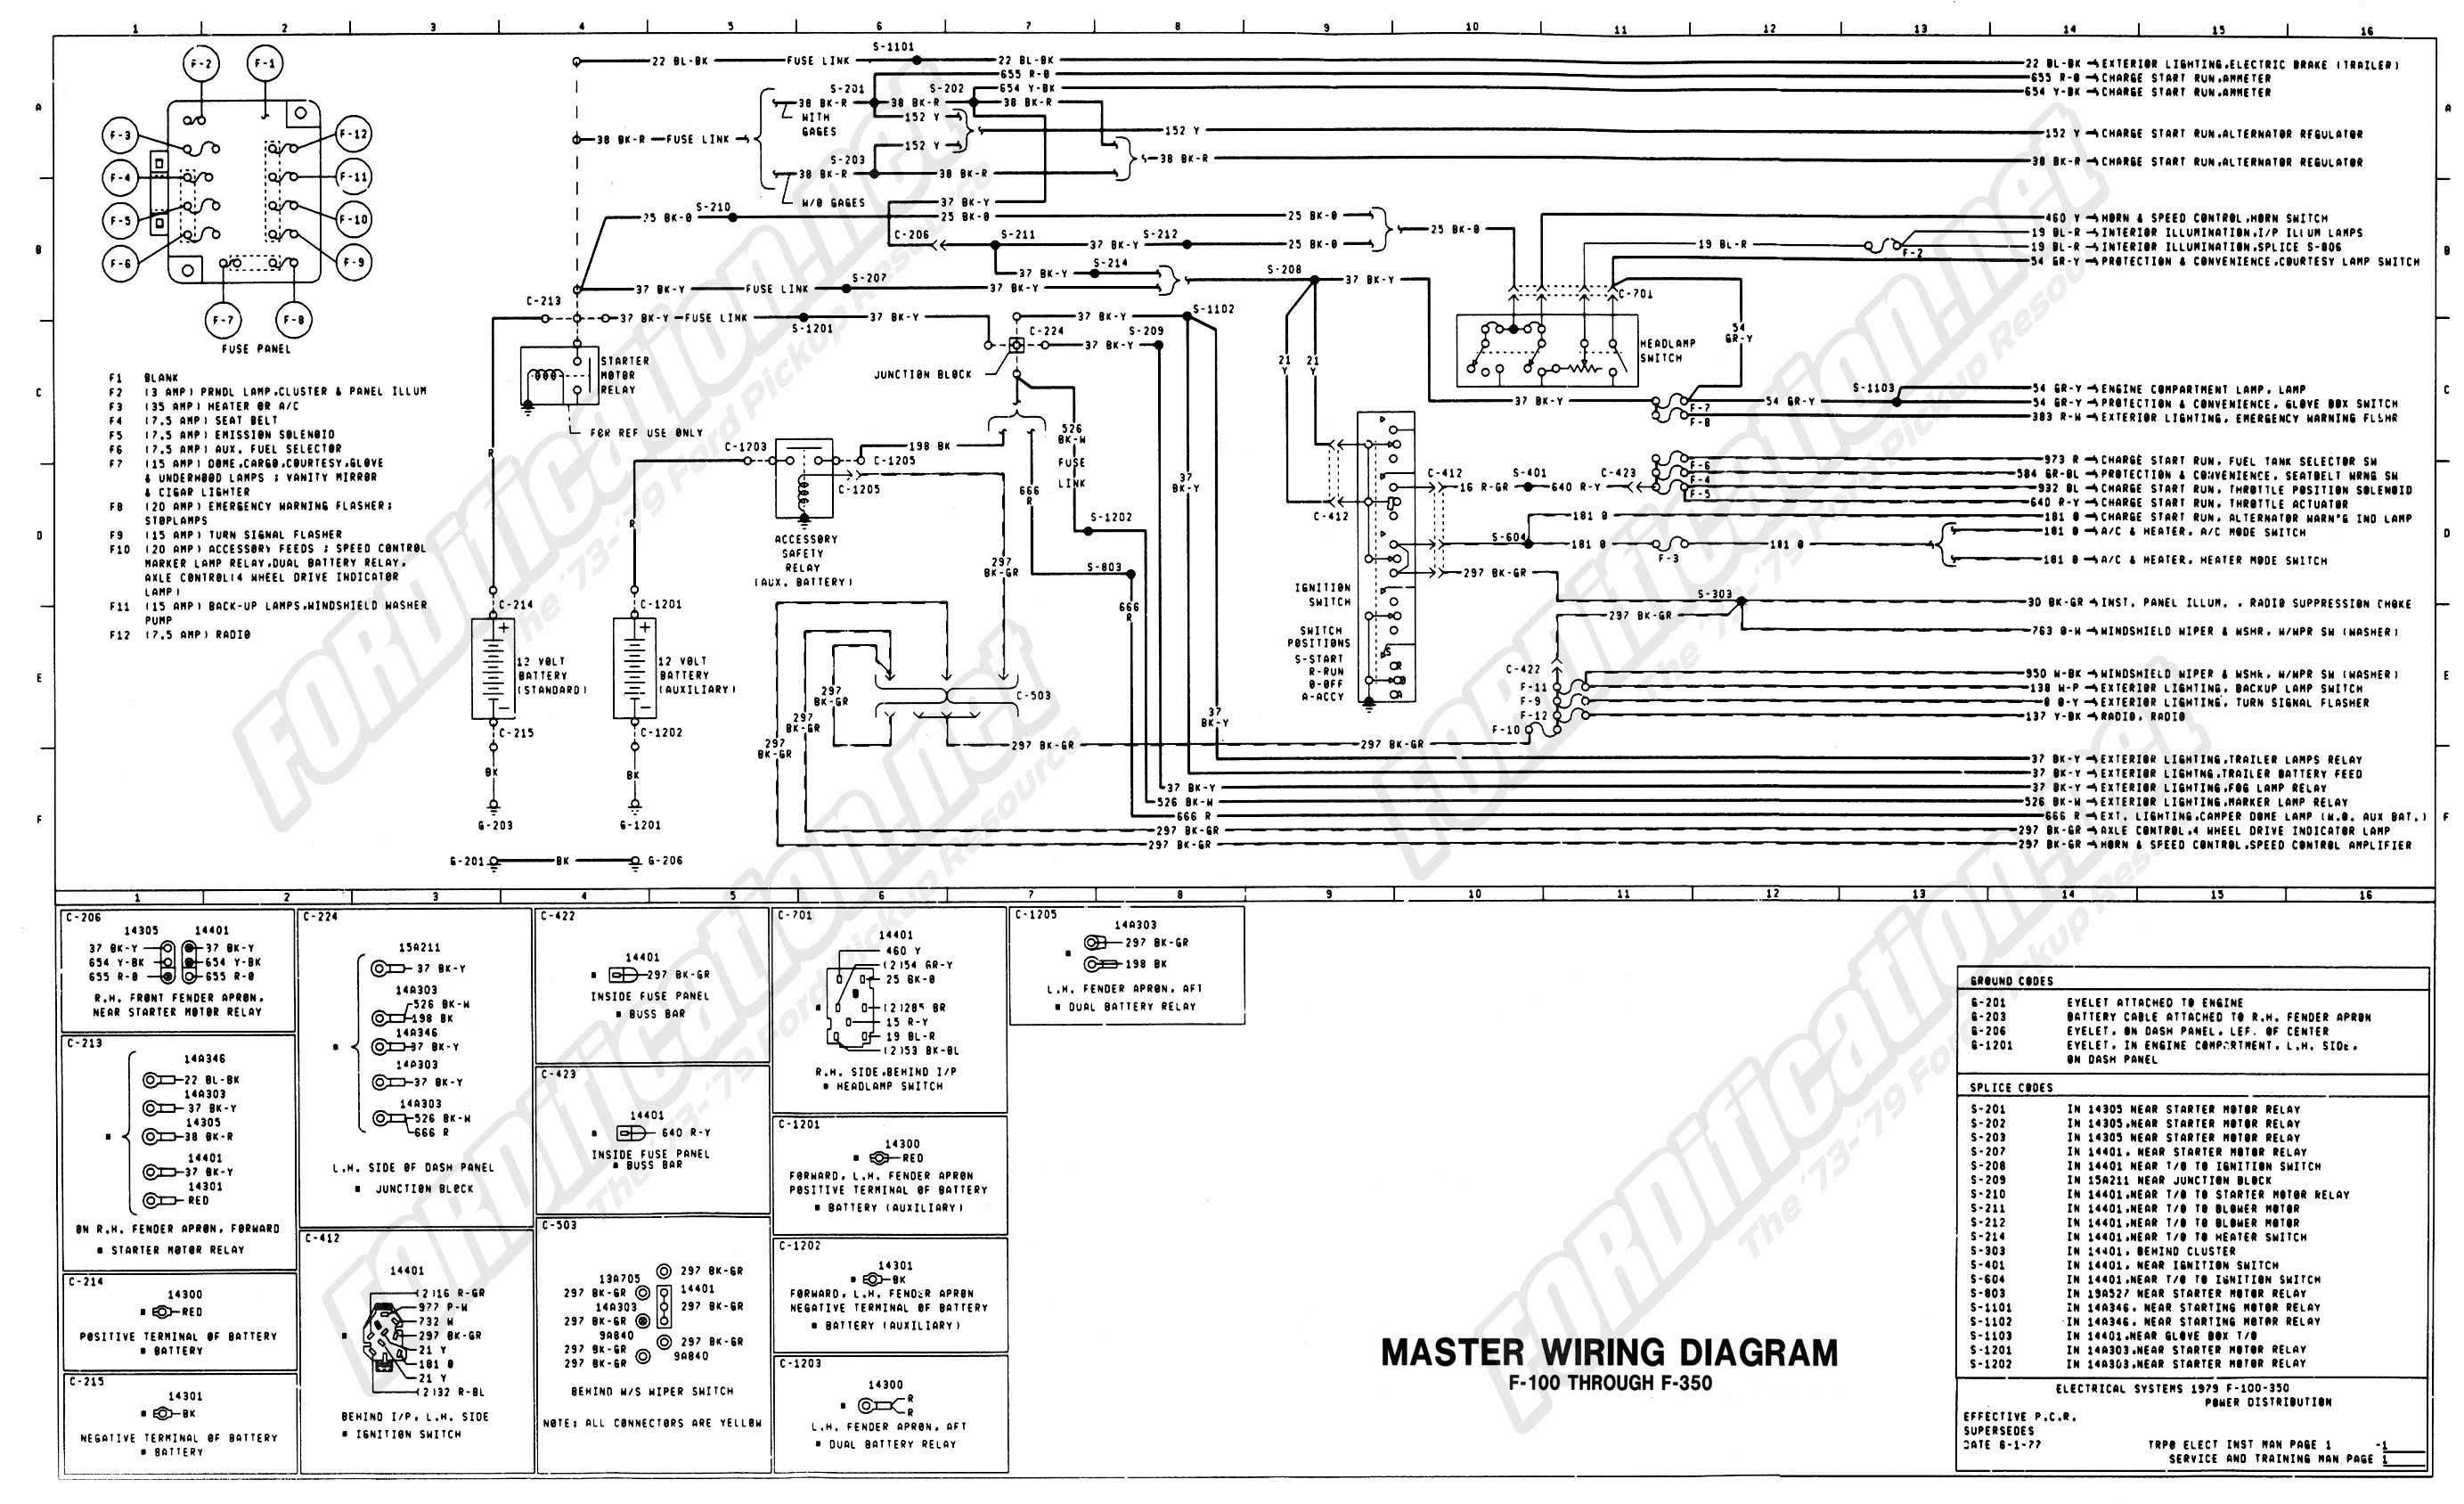 1992 Dodge Dakota Ignition System Wiring Diagram Opinions About 1971 Real U2022 Rh Mcmxliv Co 92 Fuse